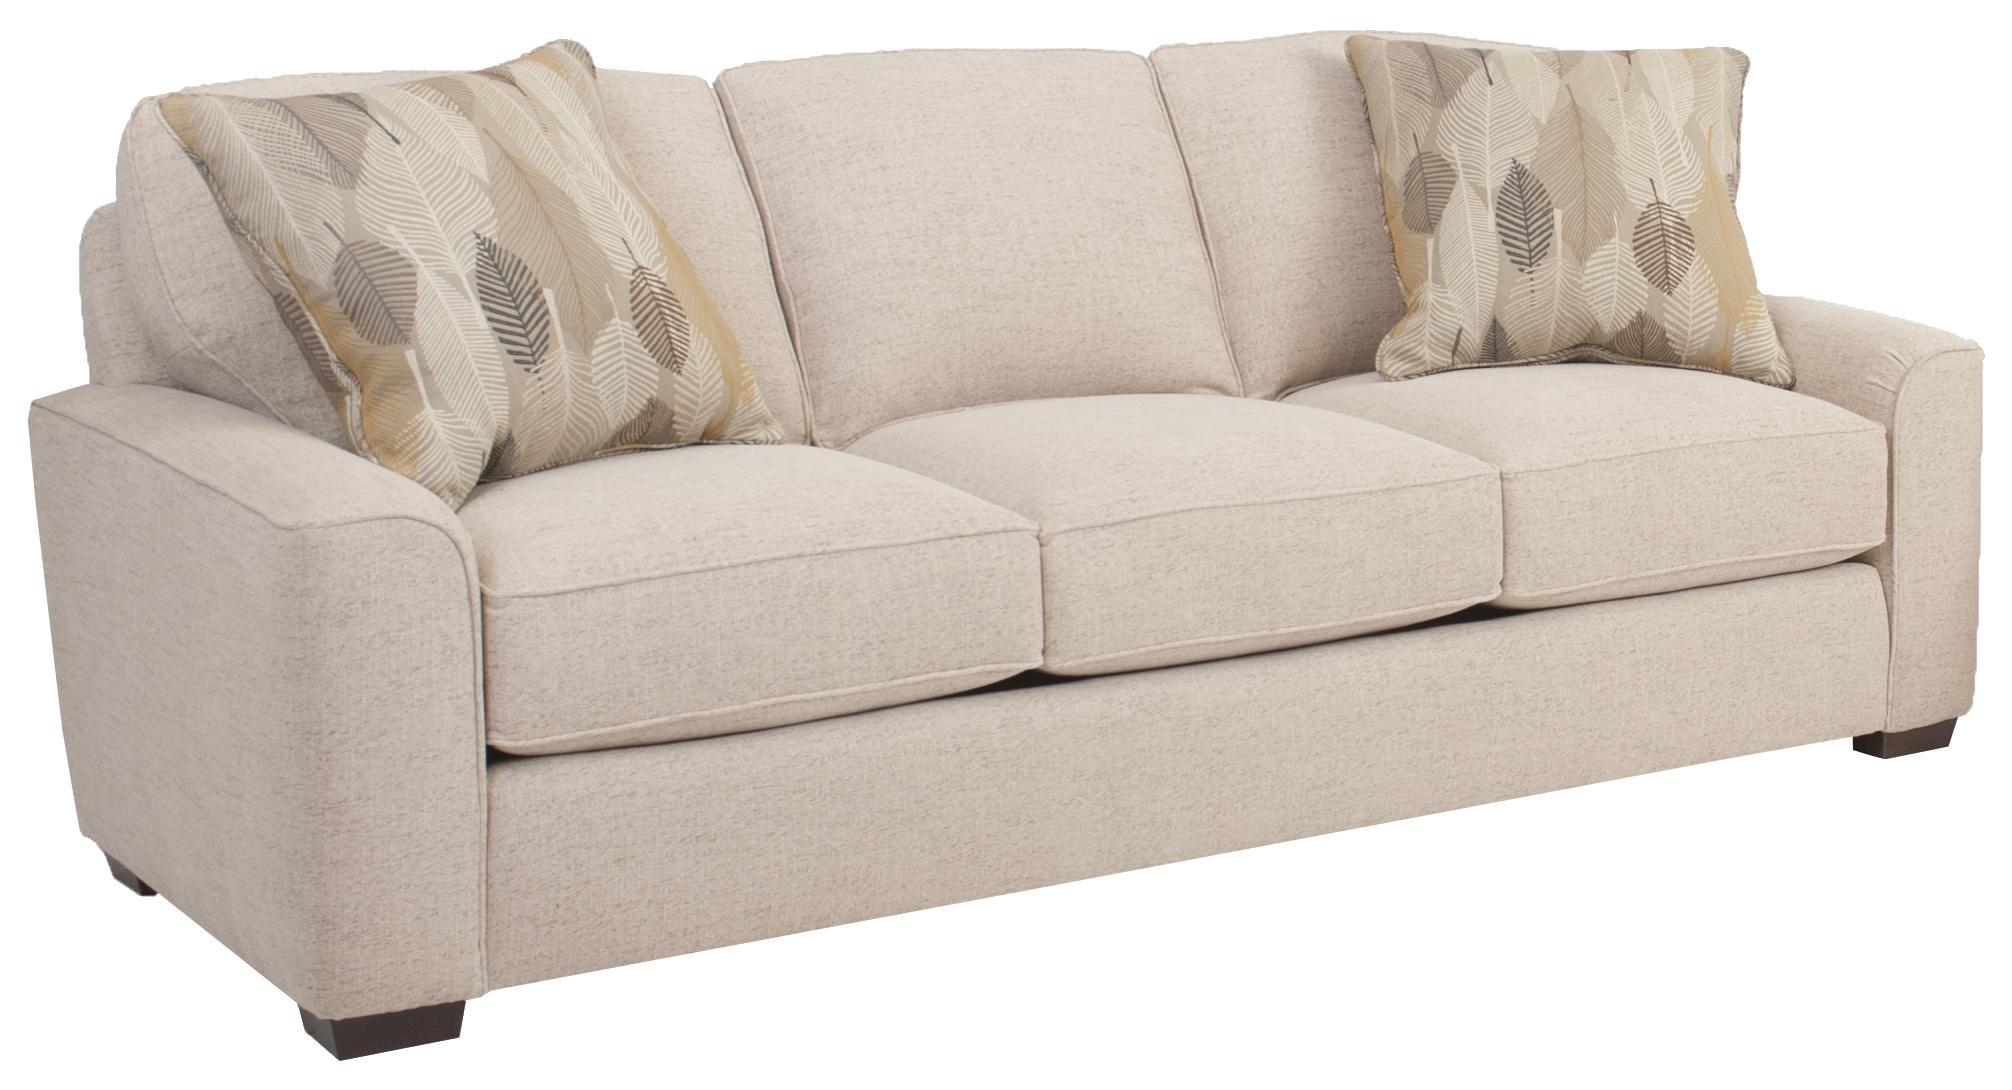 build your own sofa online cushions for sale smith brothers 8000 series retro styled